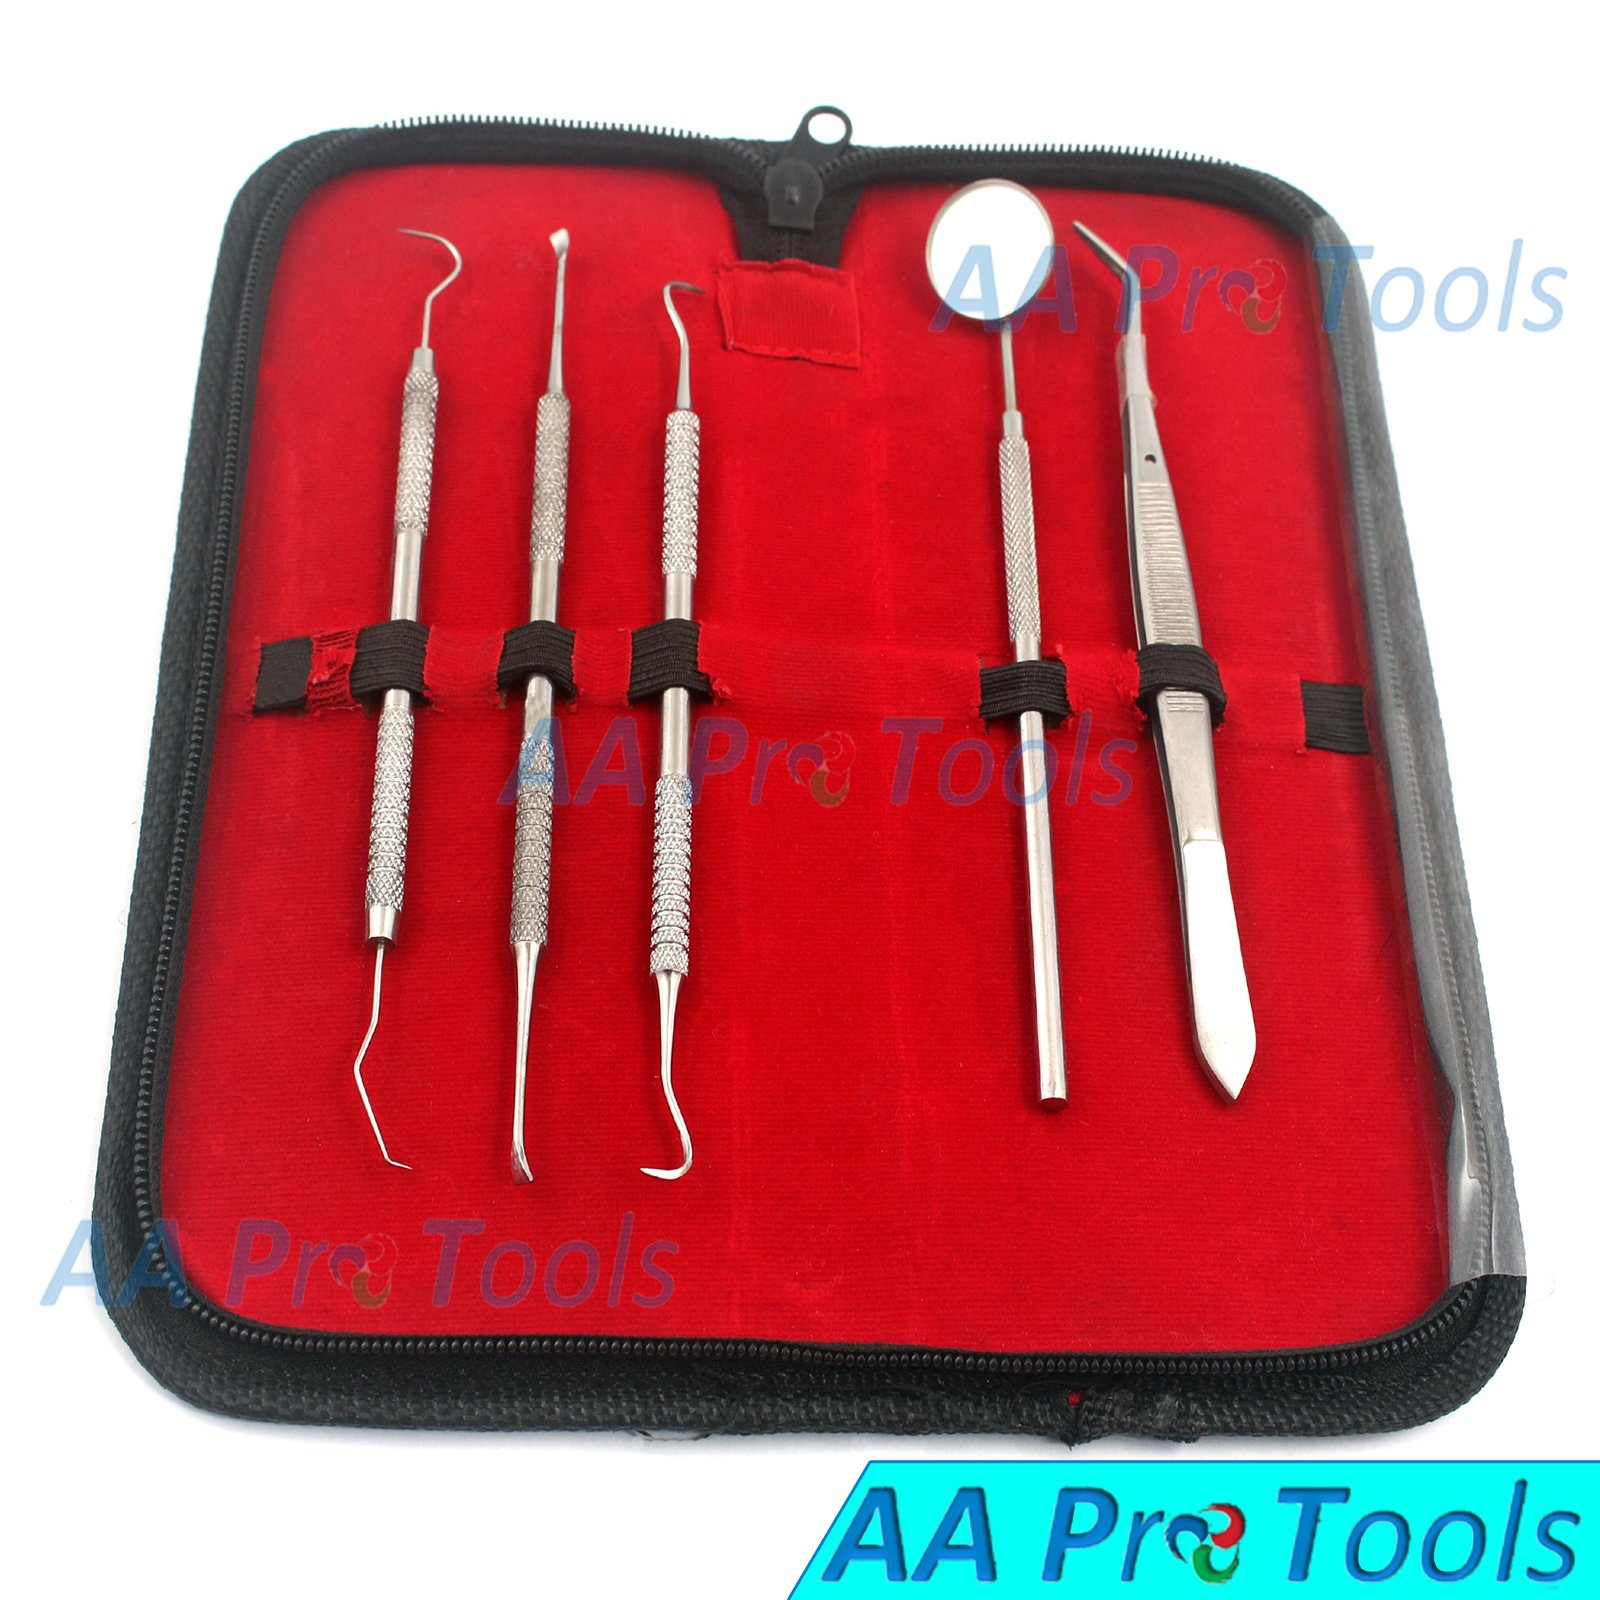 DENTIST TOOLS KIT BY AA PRO – SET OF DENTAL TOOLS– INCLUDED ANTI FOG MIRROR, TARTAR SCRAPER, DENTAL PICK, DENTAL SCALER, DENTAL FORCEPS AND CARRYING POUCH - FOR BOTH PERSONAL AND PET USE